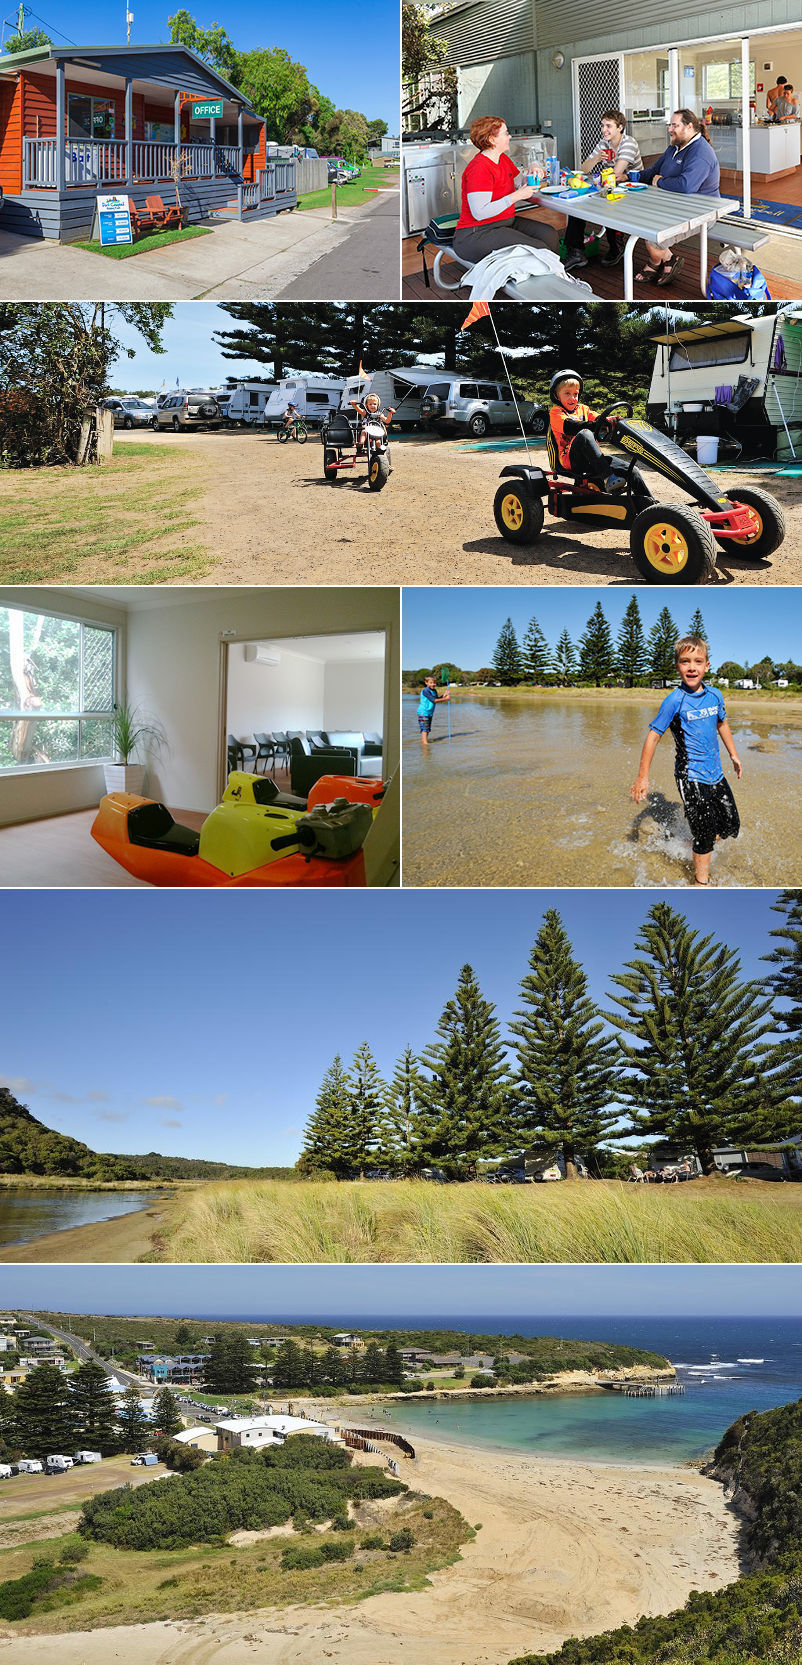 Port Campbell Holiday Park - Grounds and facilities